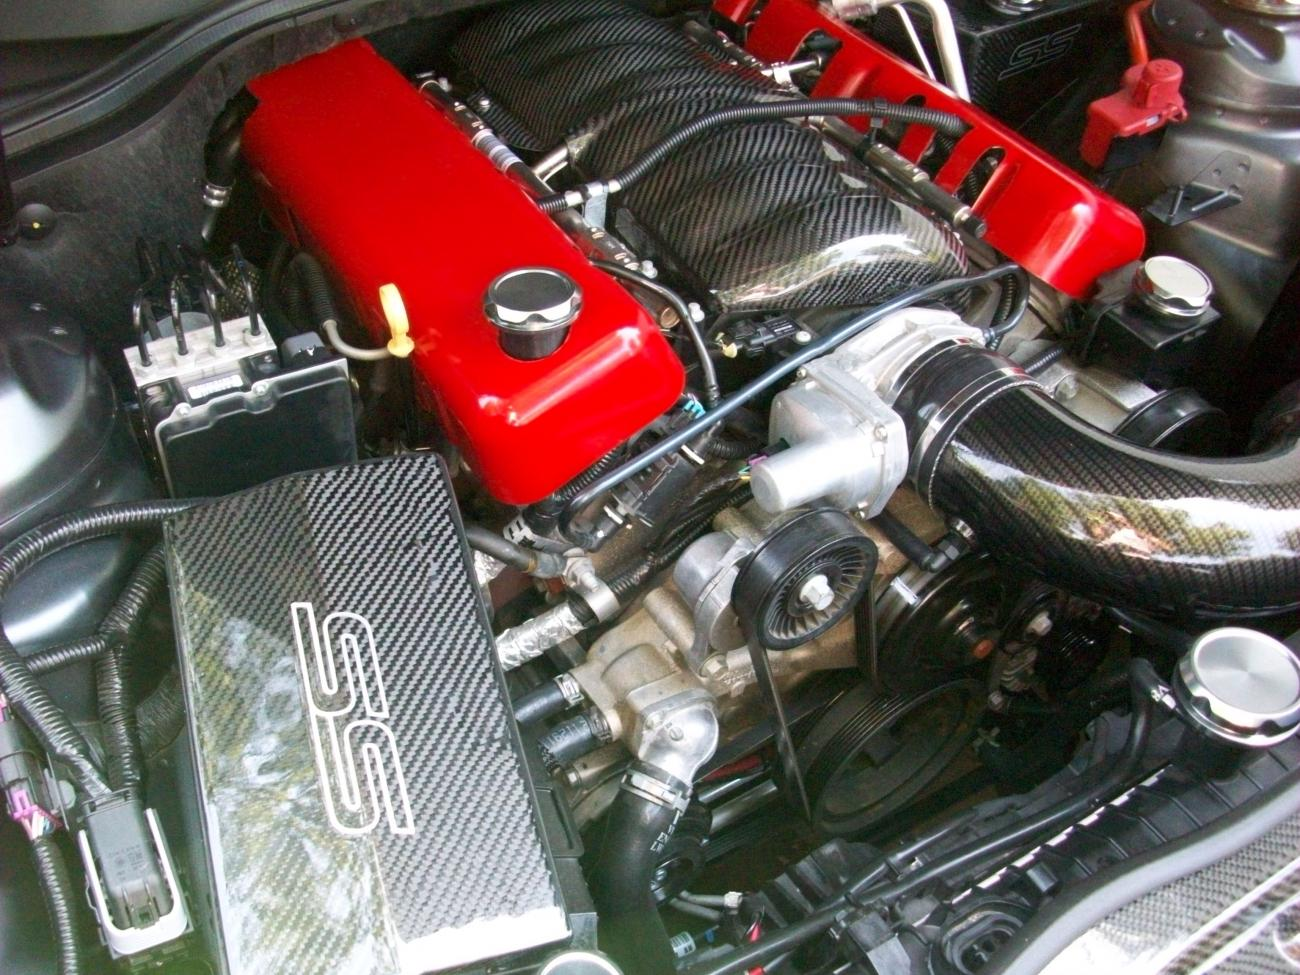 Project Cleaning the Clutter in Our Engine Bay - Page 89